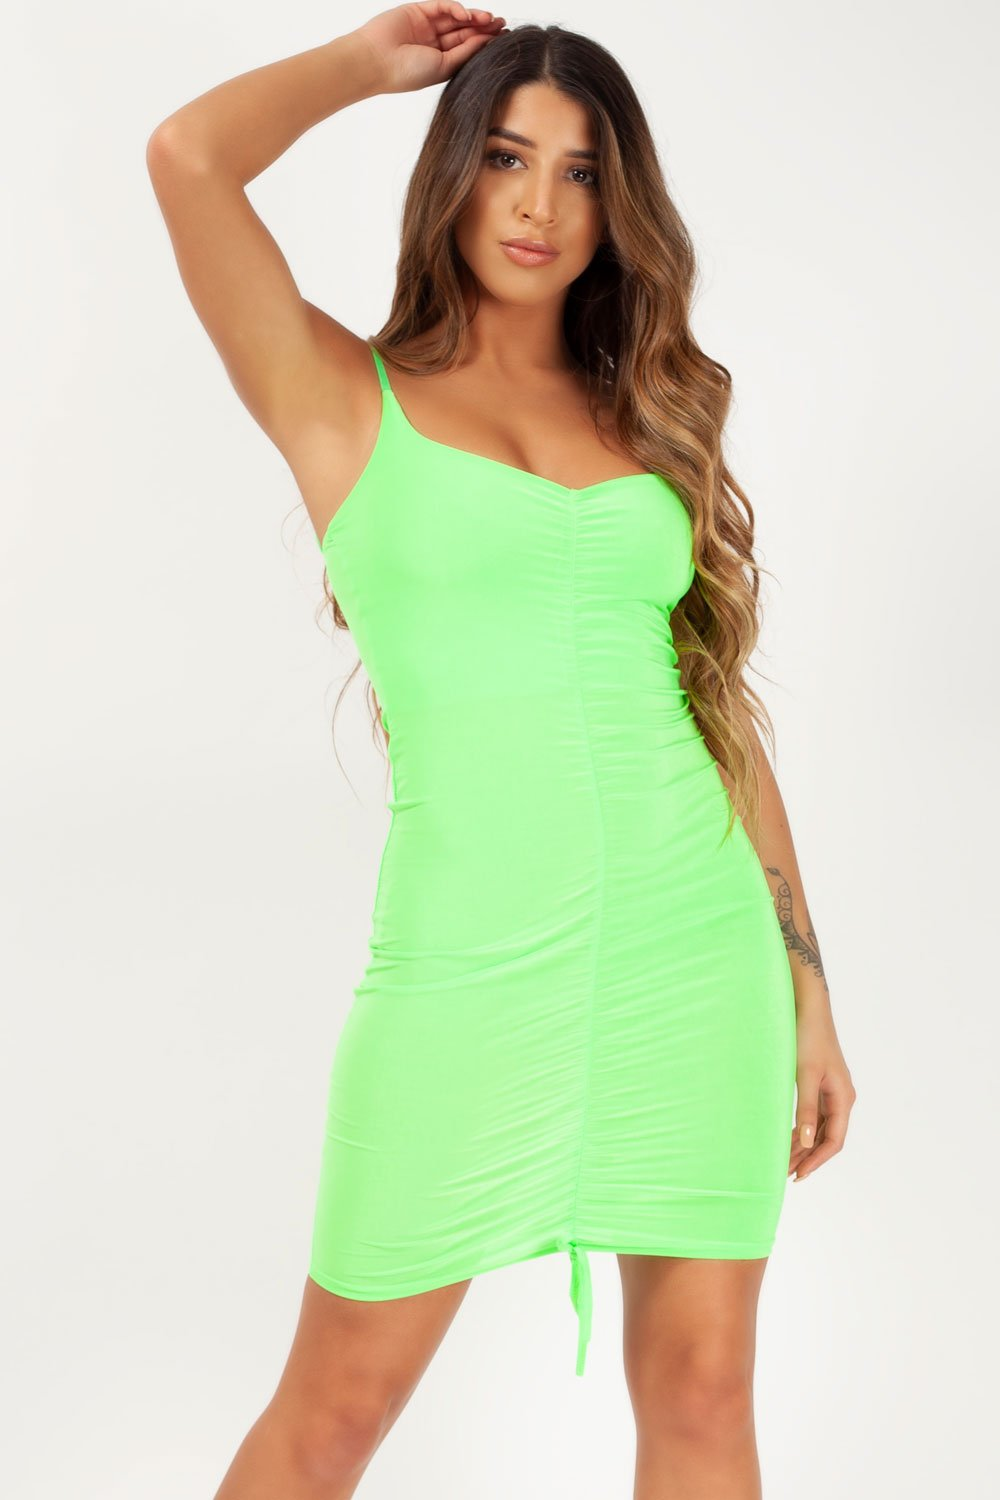 ruched front neon lime dress styledup fashion